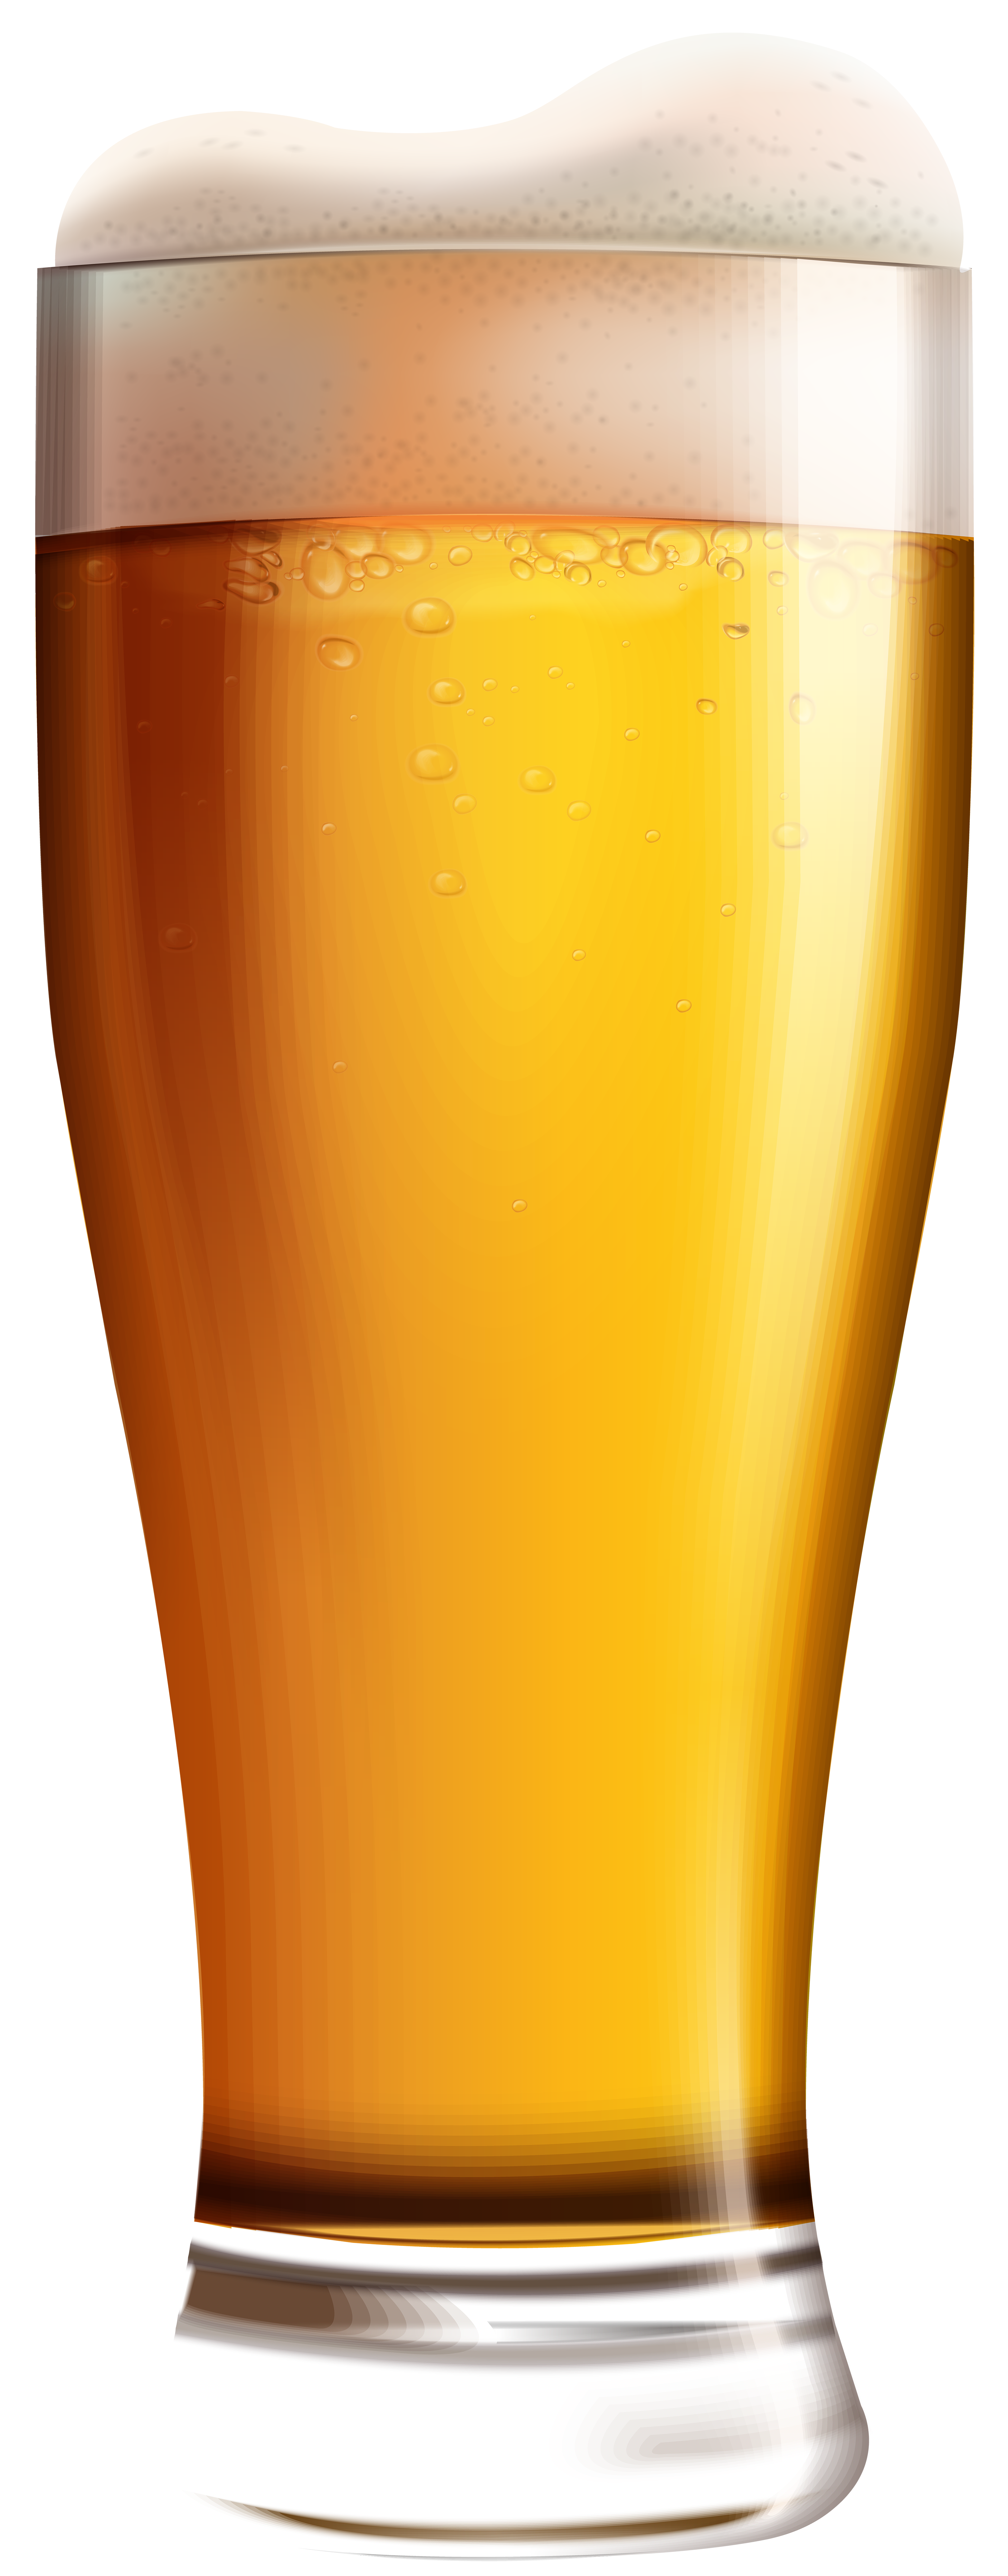 Glass of beer png. With clip art image